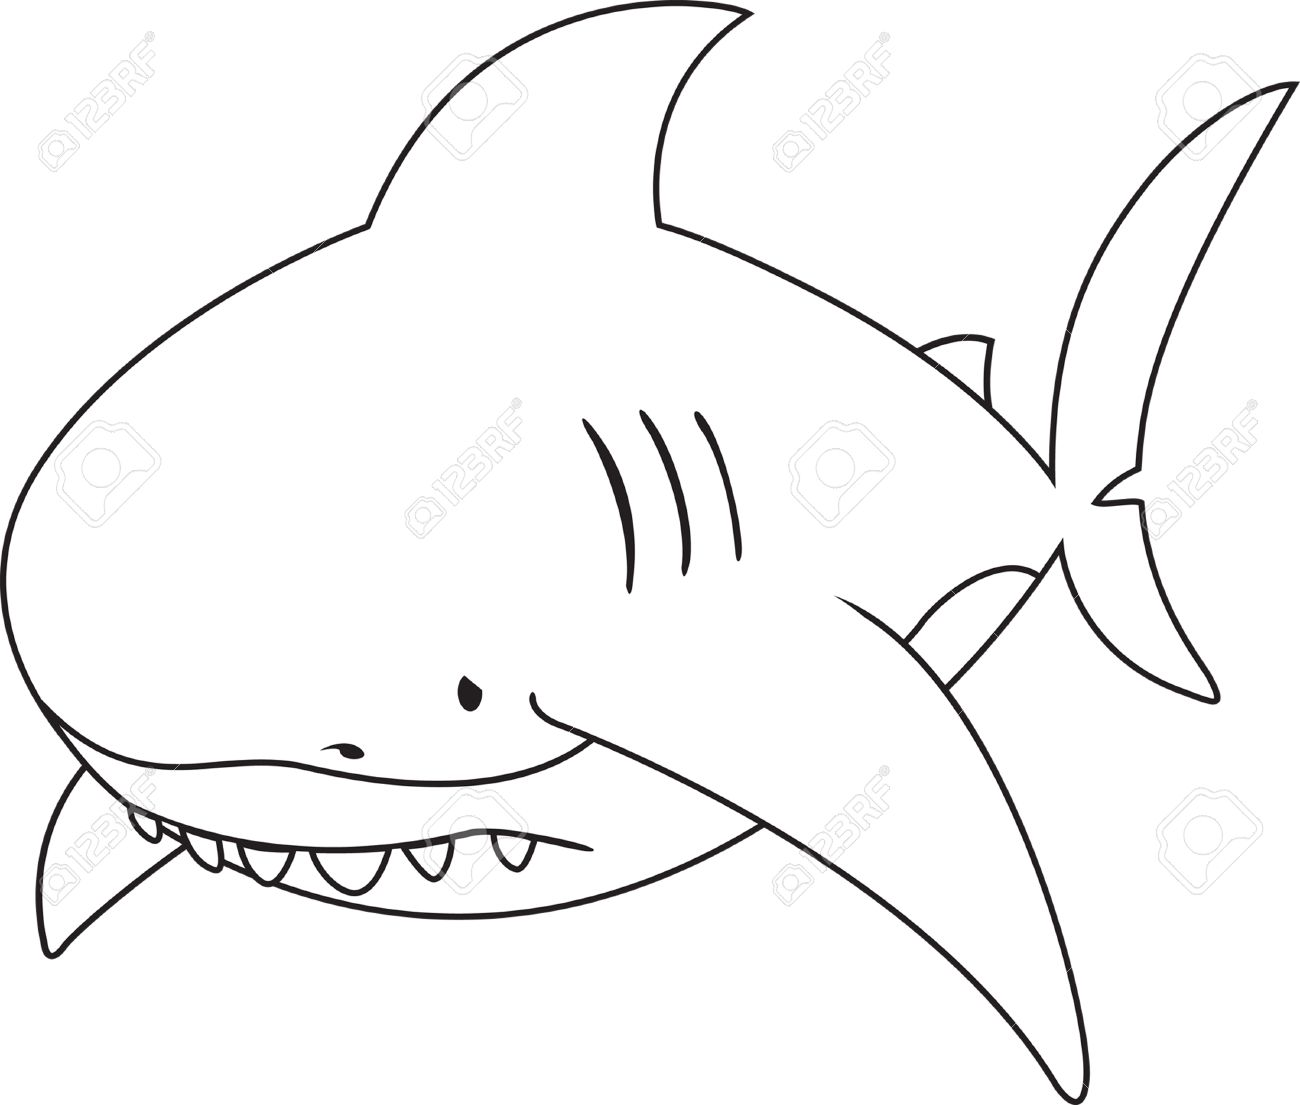 sad looking great white sharkcoloring book stock vector 39328562 - Shark Coloring Book